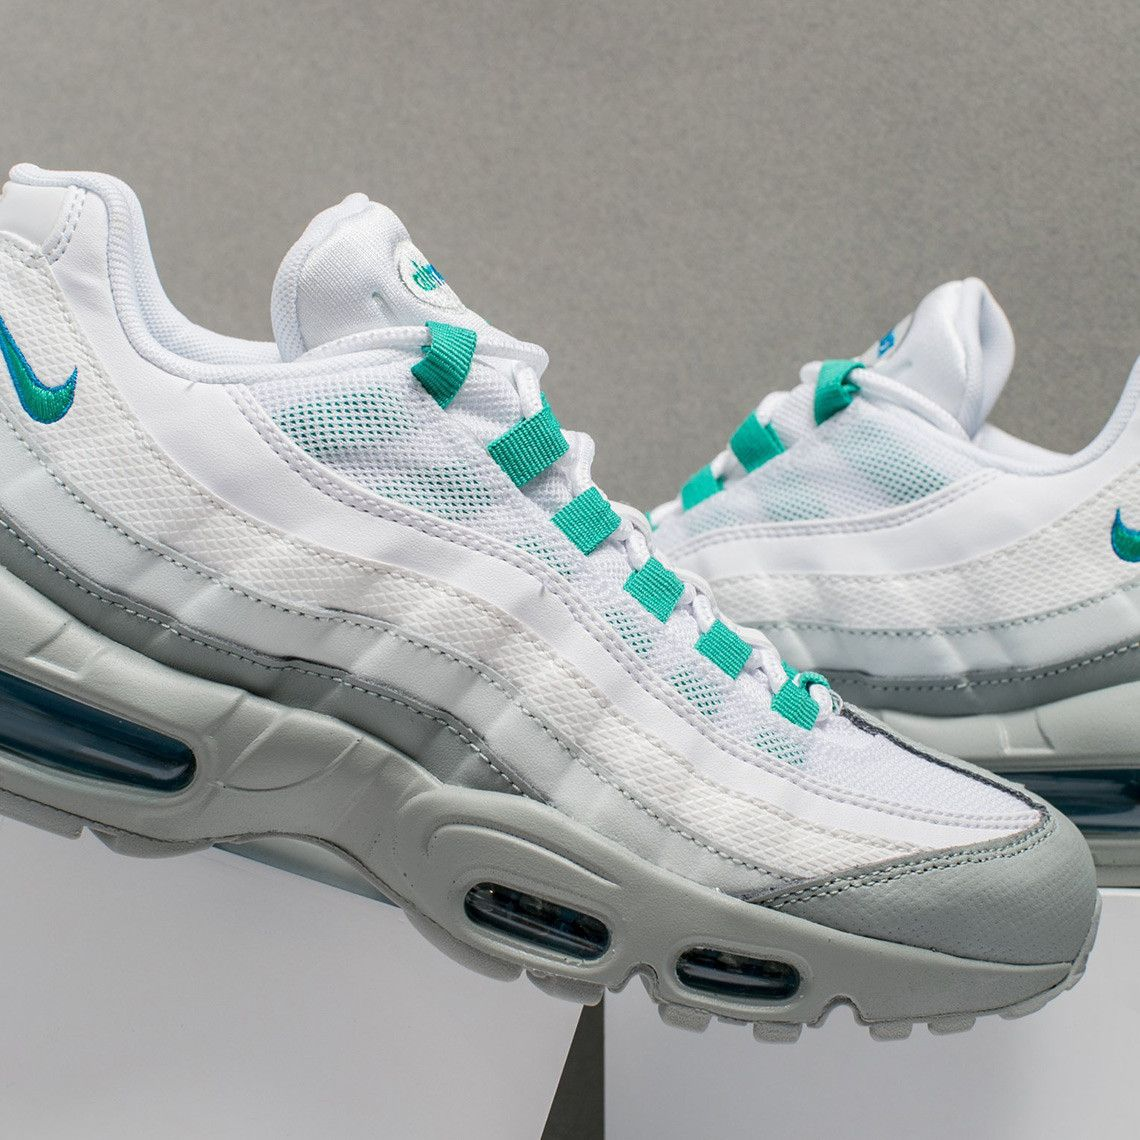 online store ca3c9 06273 Discover ideas about Nike Air Max 2012. January 2019. website full of ...